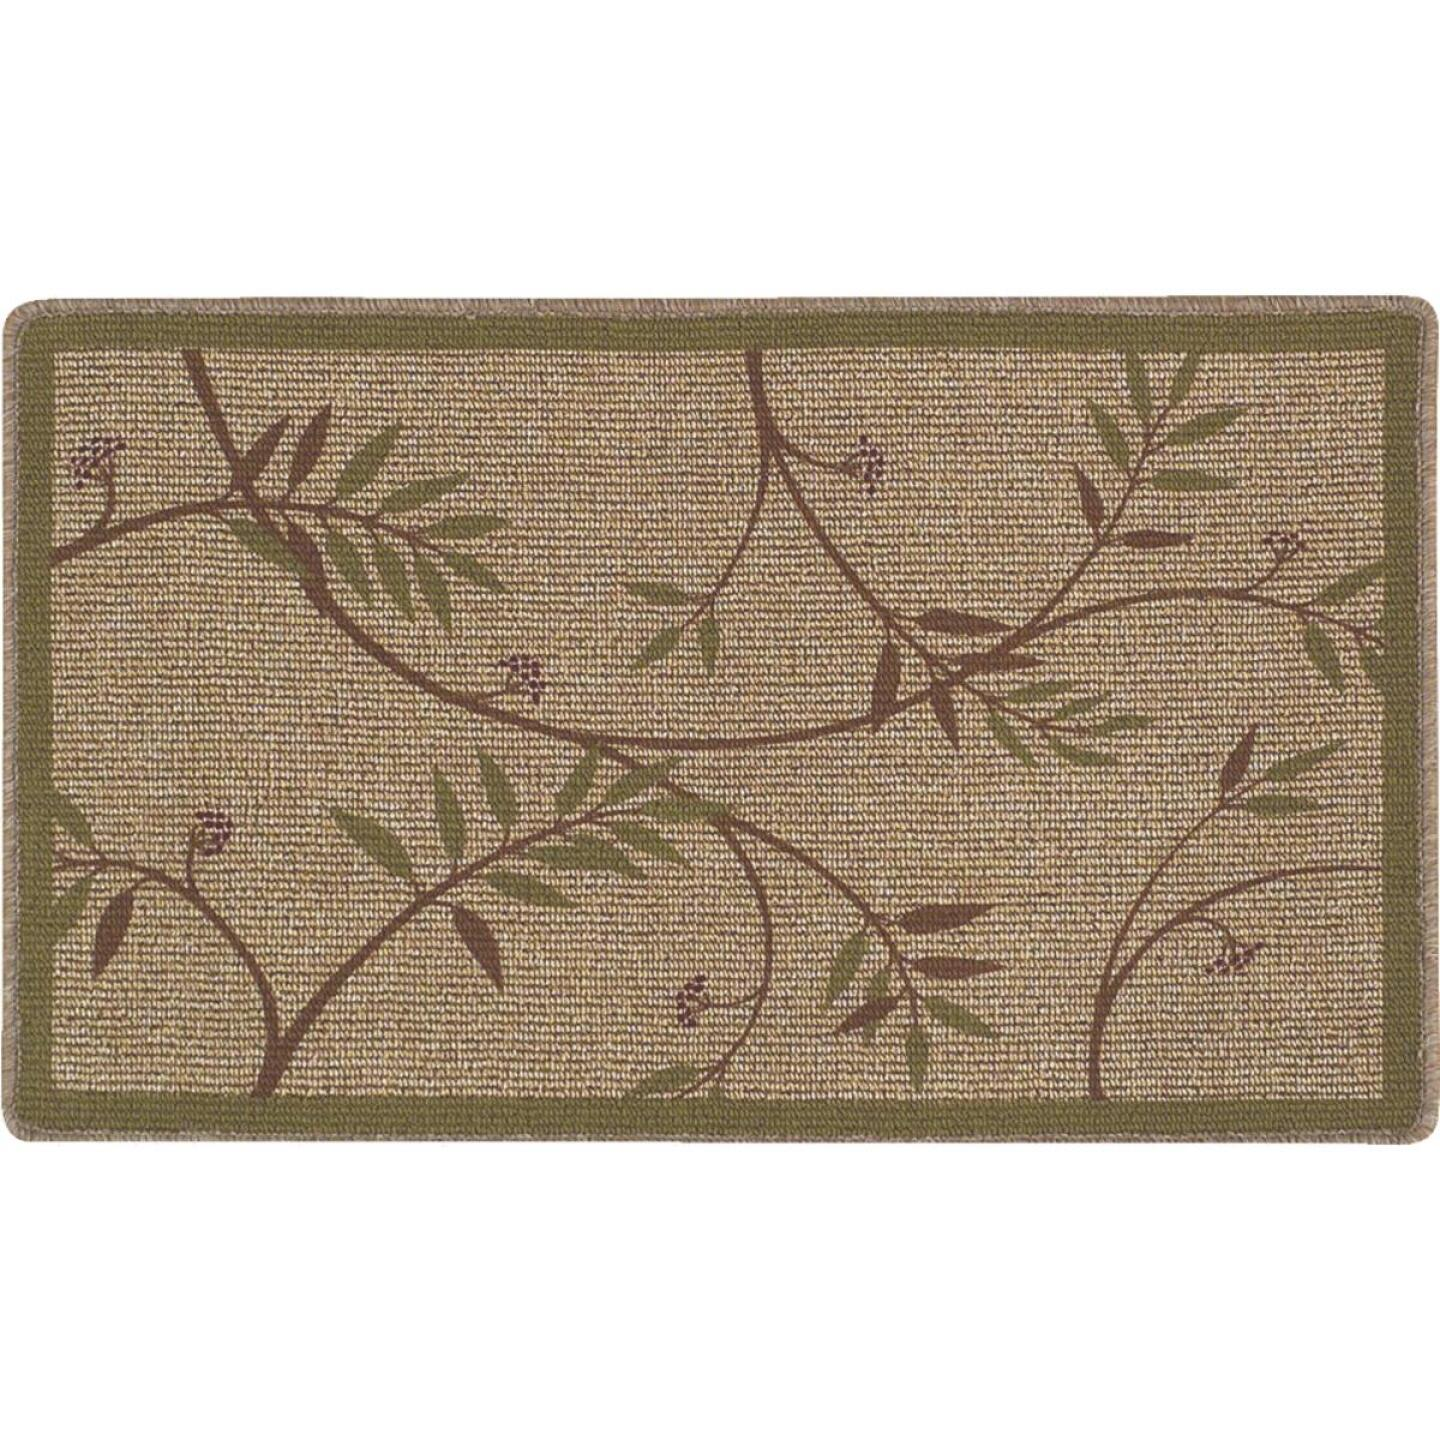 Bacova Berber Fairlawn 1 Ft. 11-1/2 In. x 3 Ft. 4 In. Area Rug Image 1